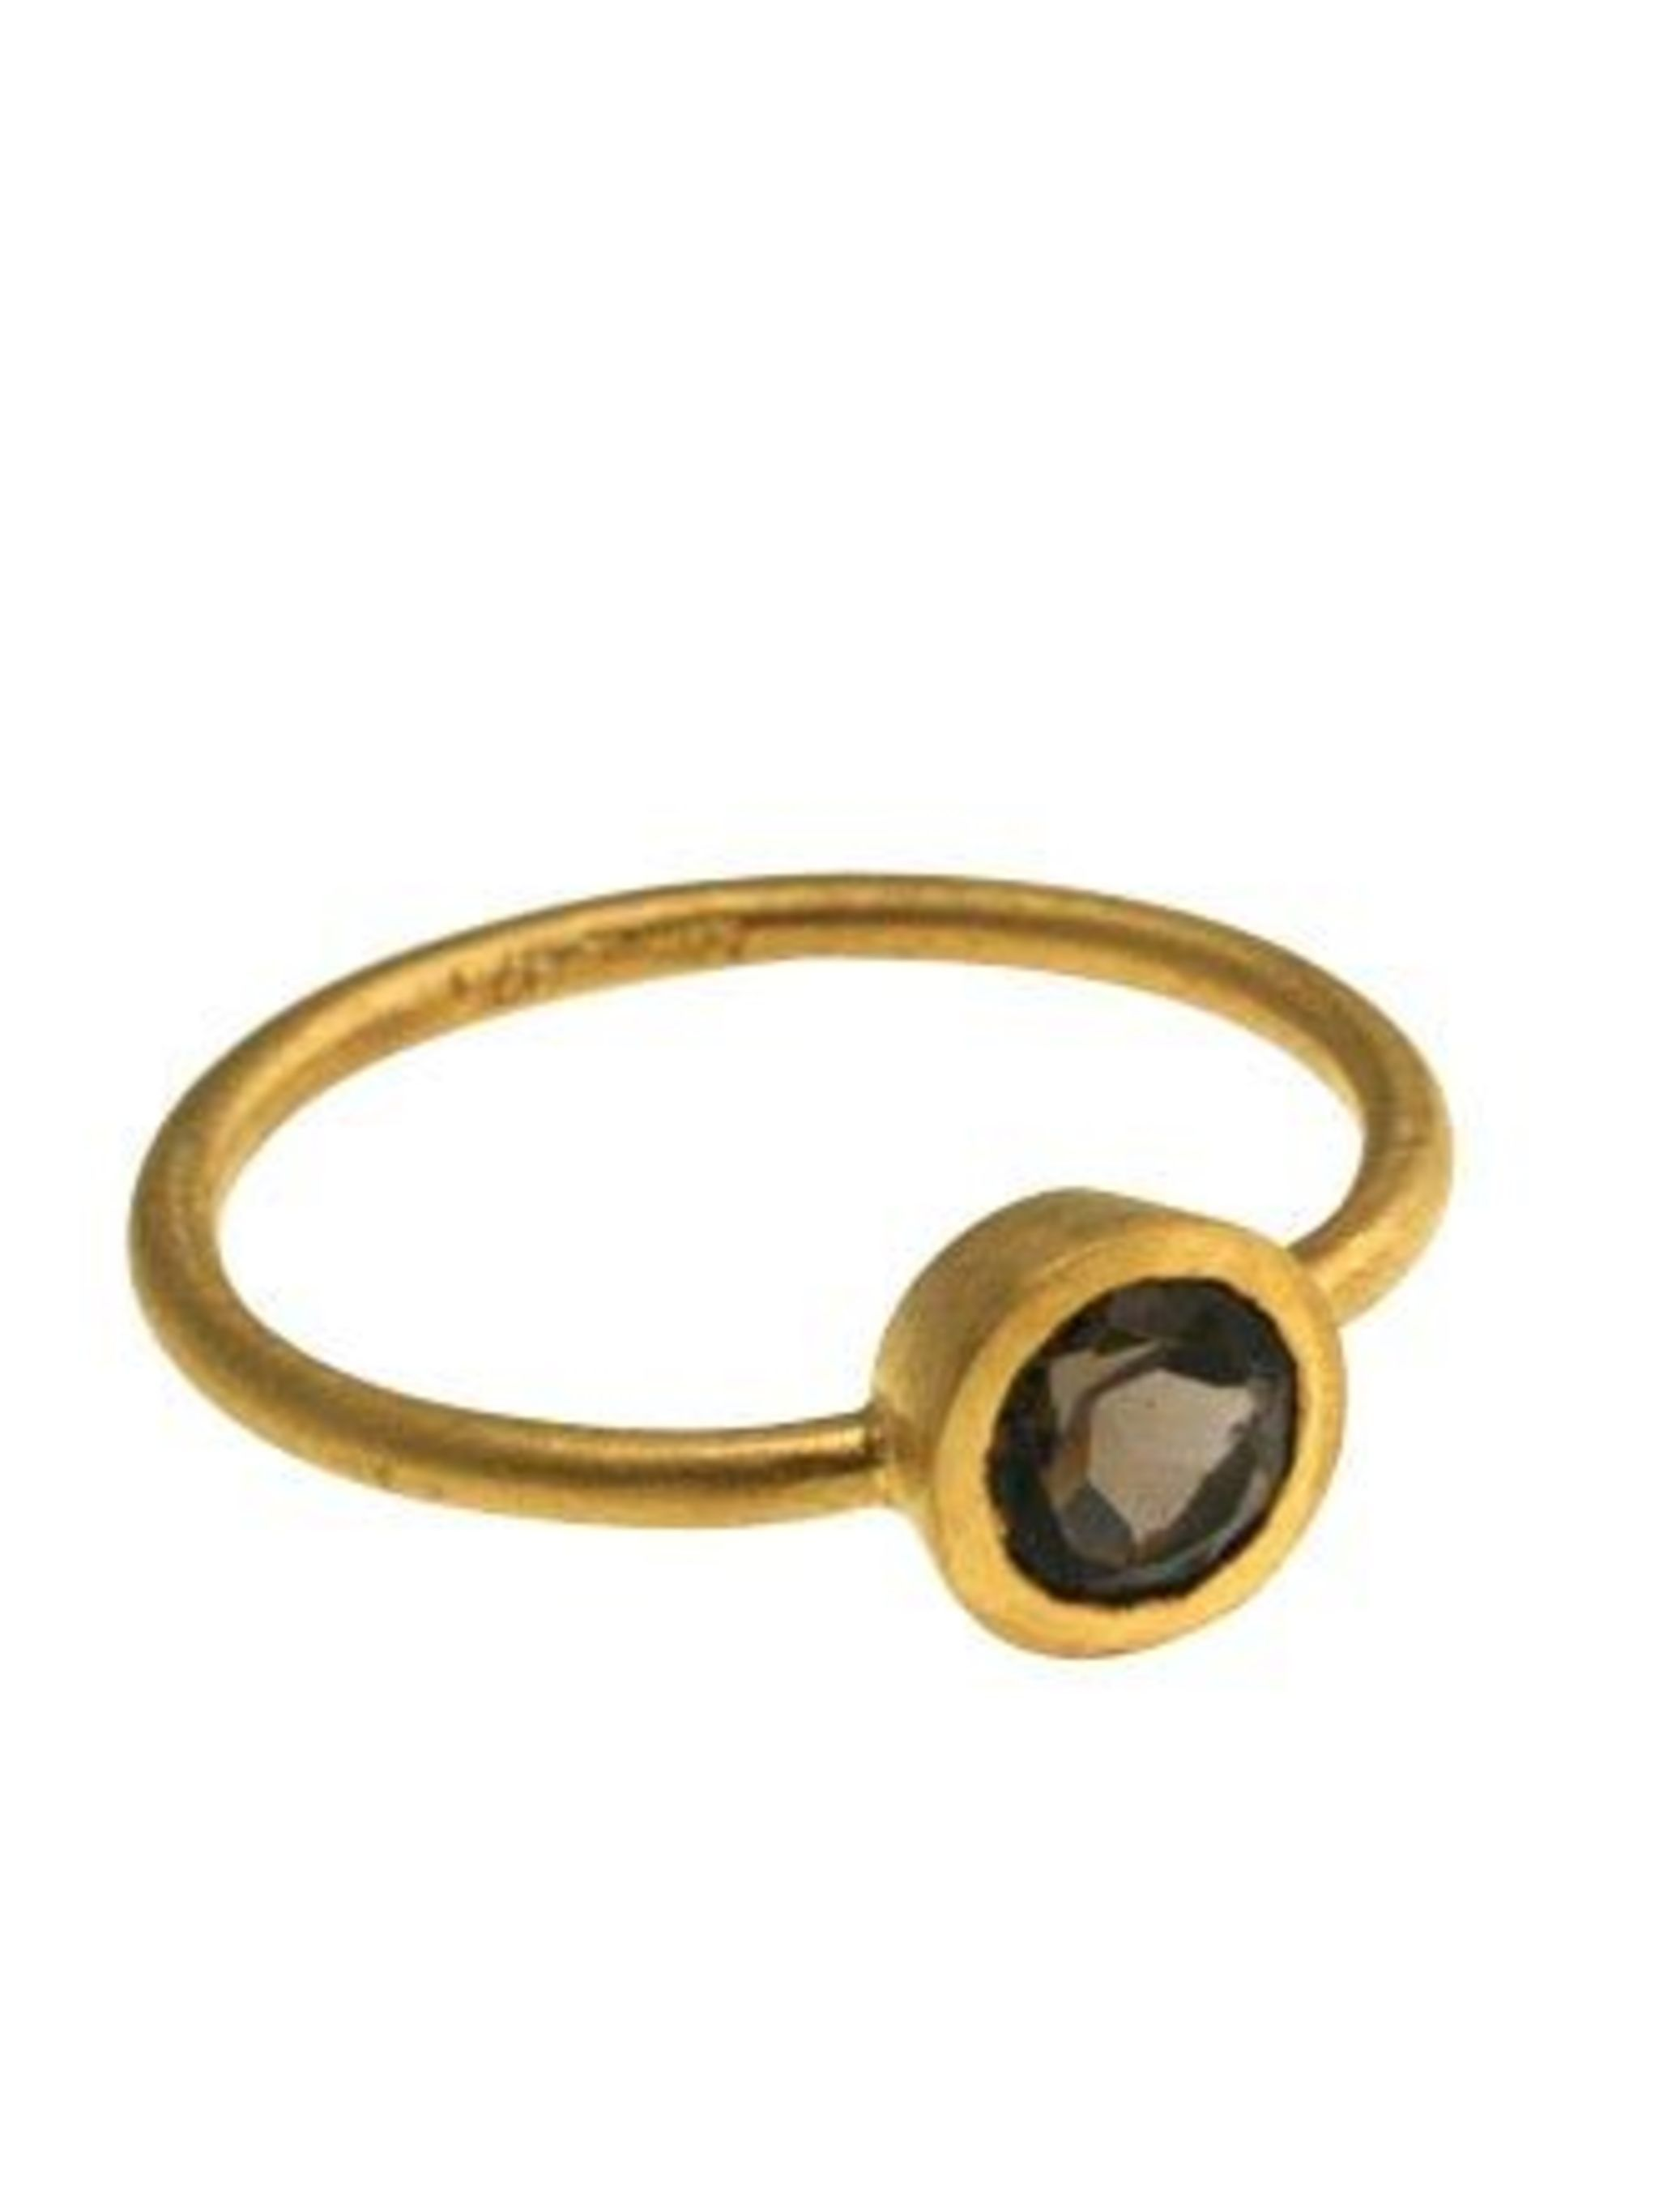 "<p>Statement and costume jewellery is all very well, but make sure you invest in some staple pieces that will transcend the trends too. Add this Mitos ring to your Christmas list or self-gift now.Ring, £65 by Mitos at <a href=""http://www.econe.co.uk/Rings"